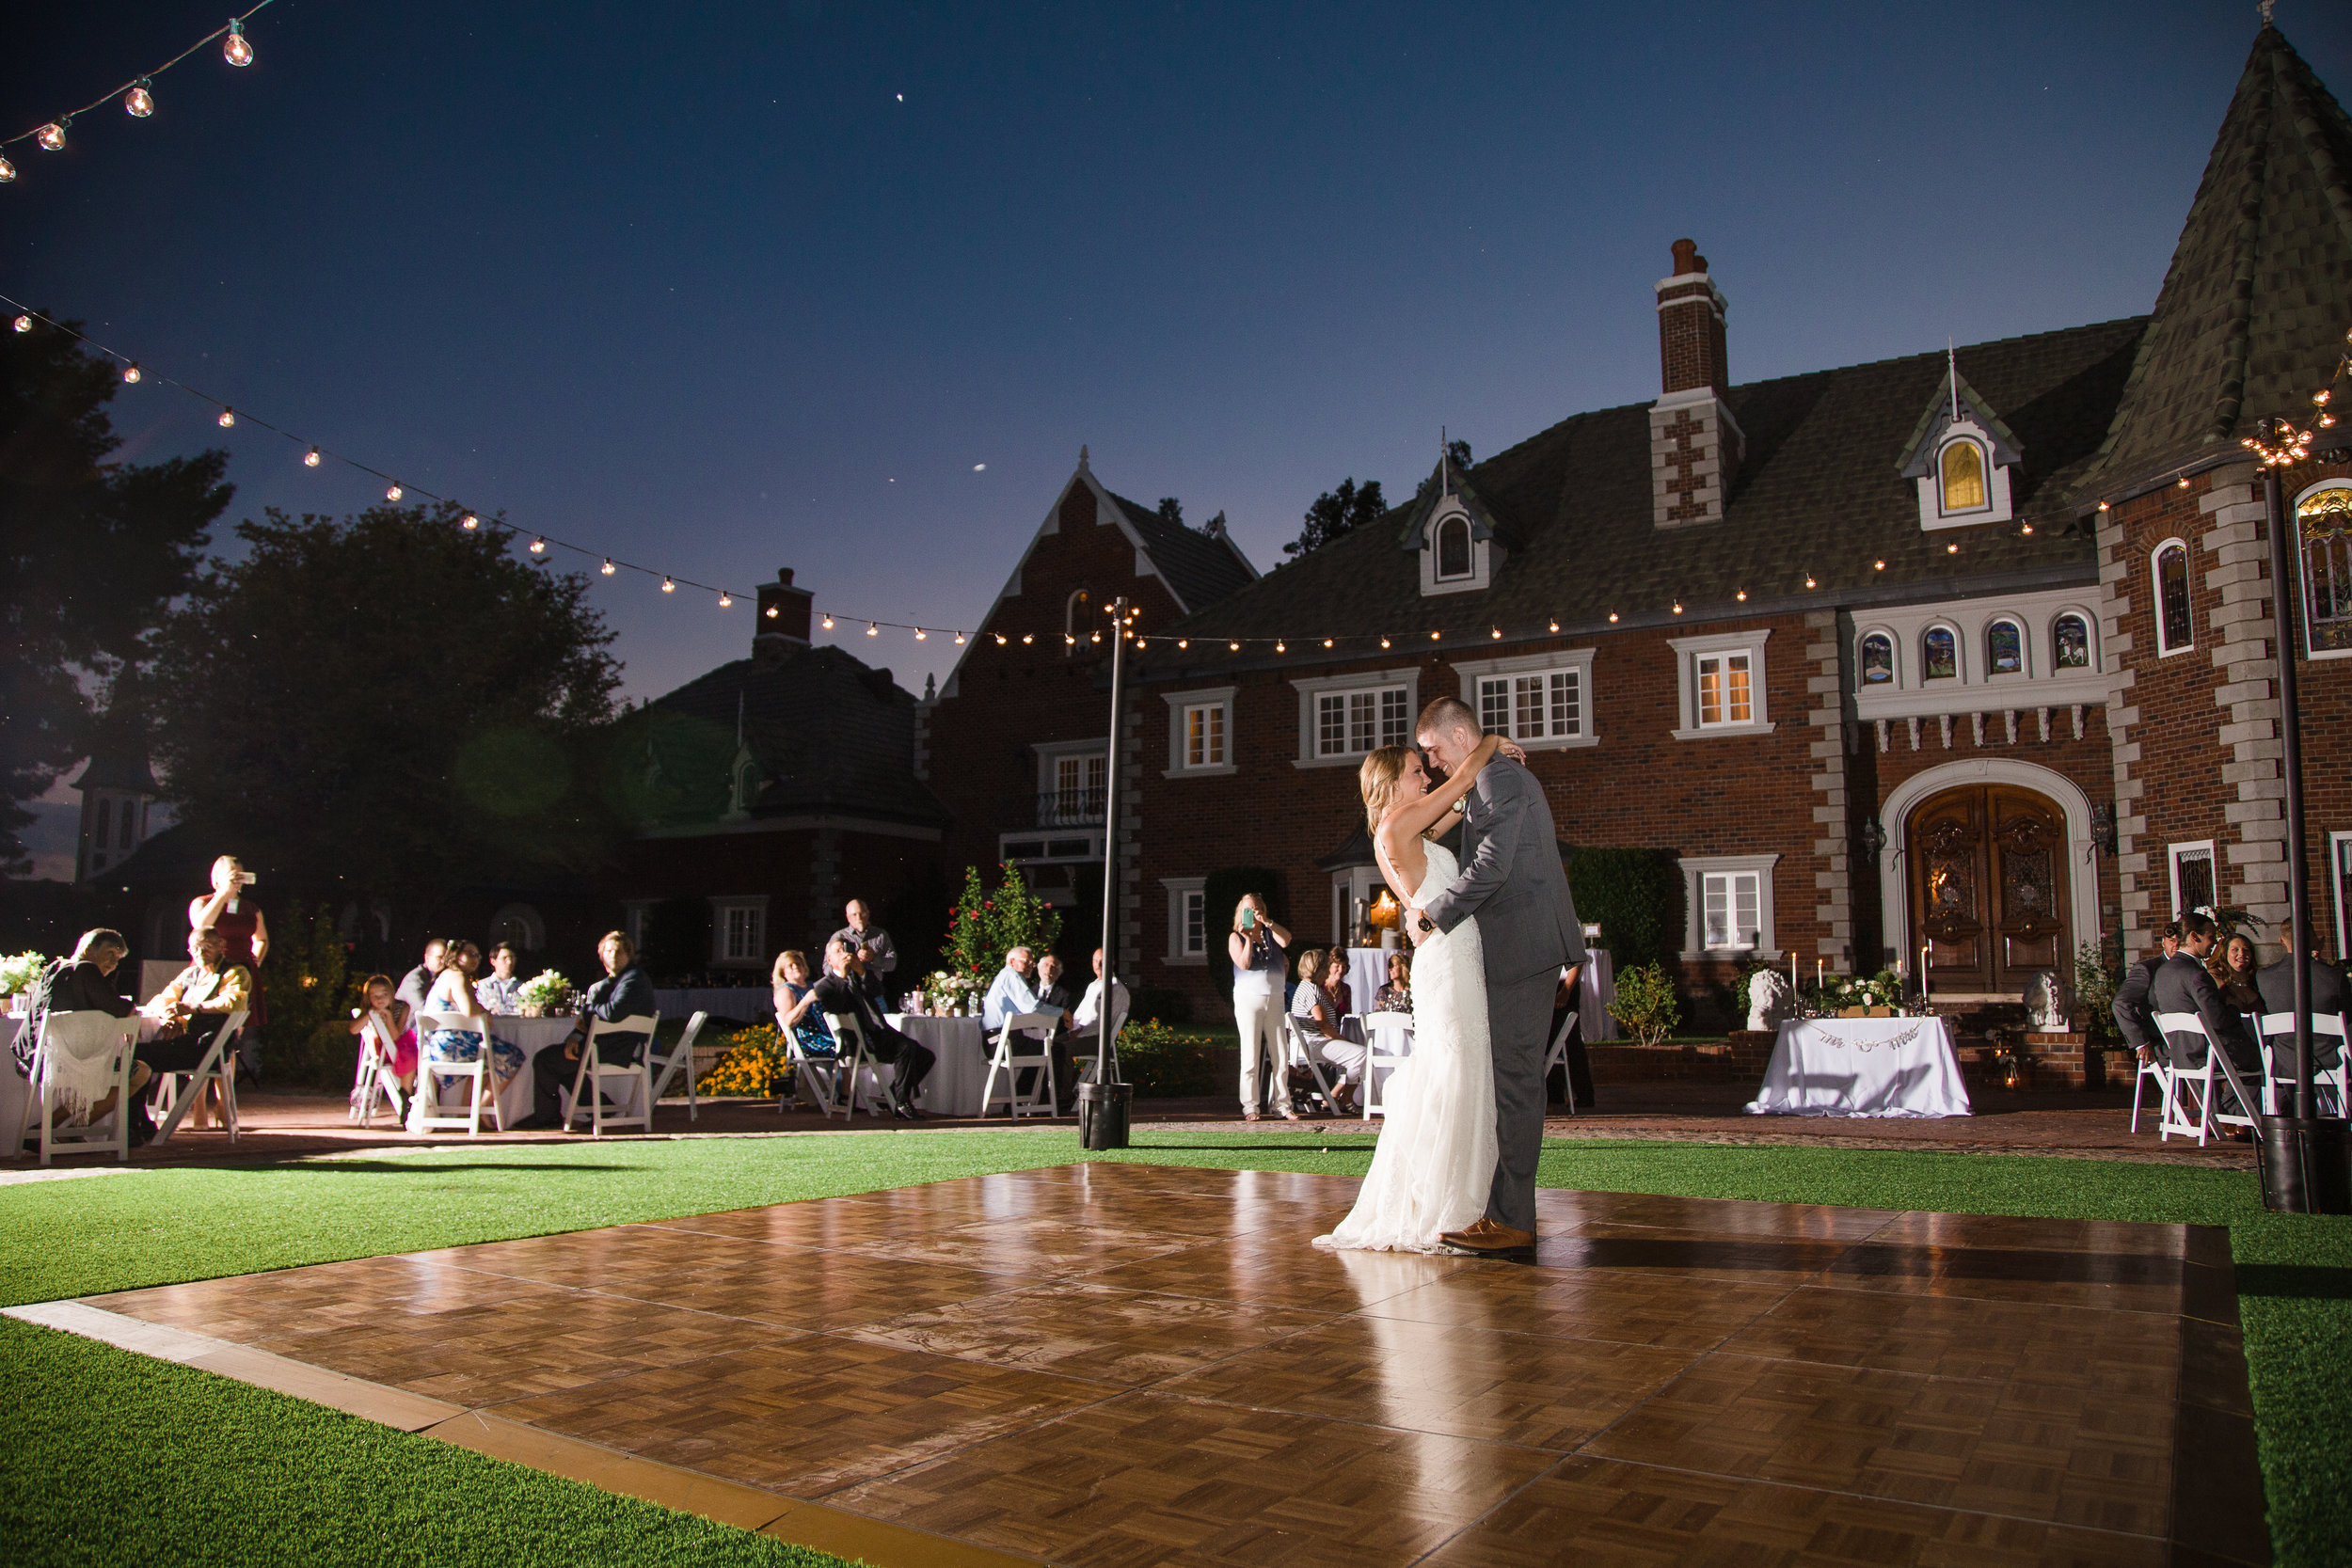 First dance at Chateau de View wedding